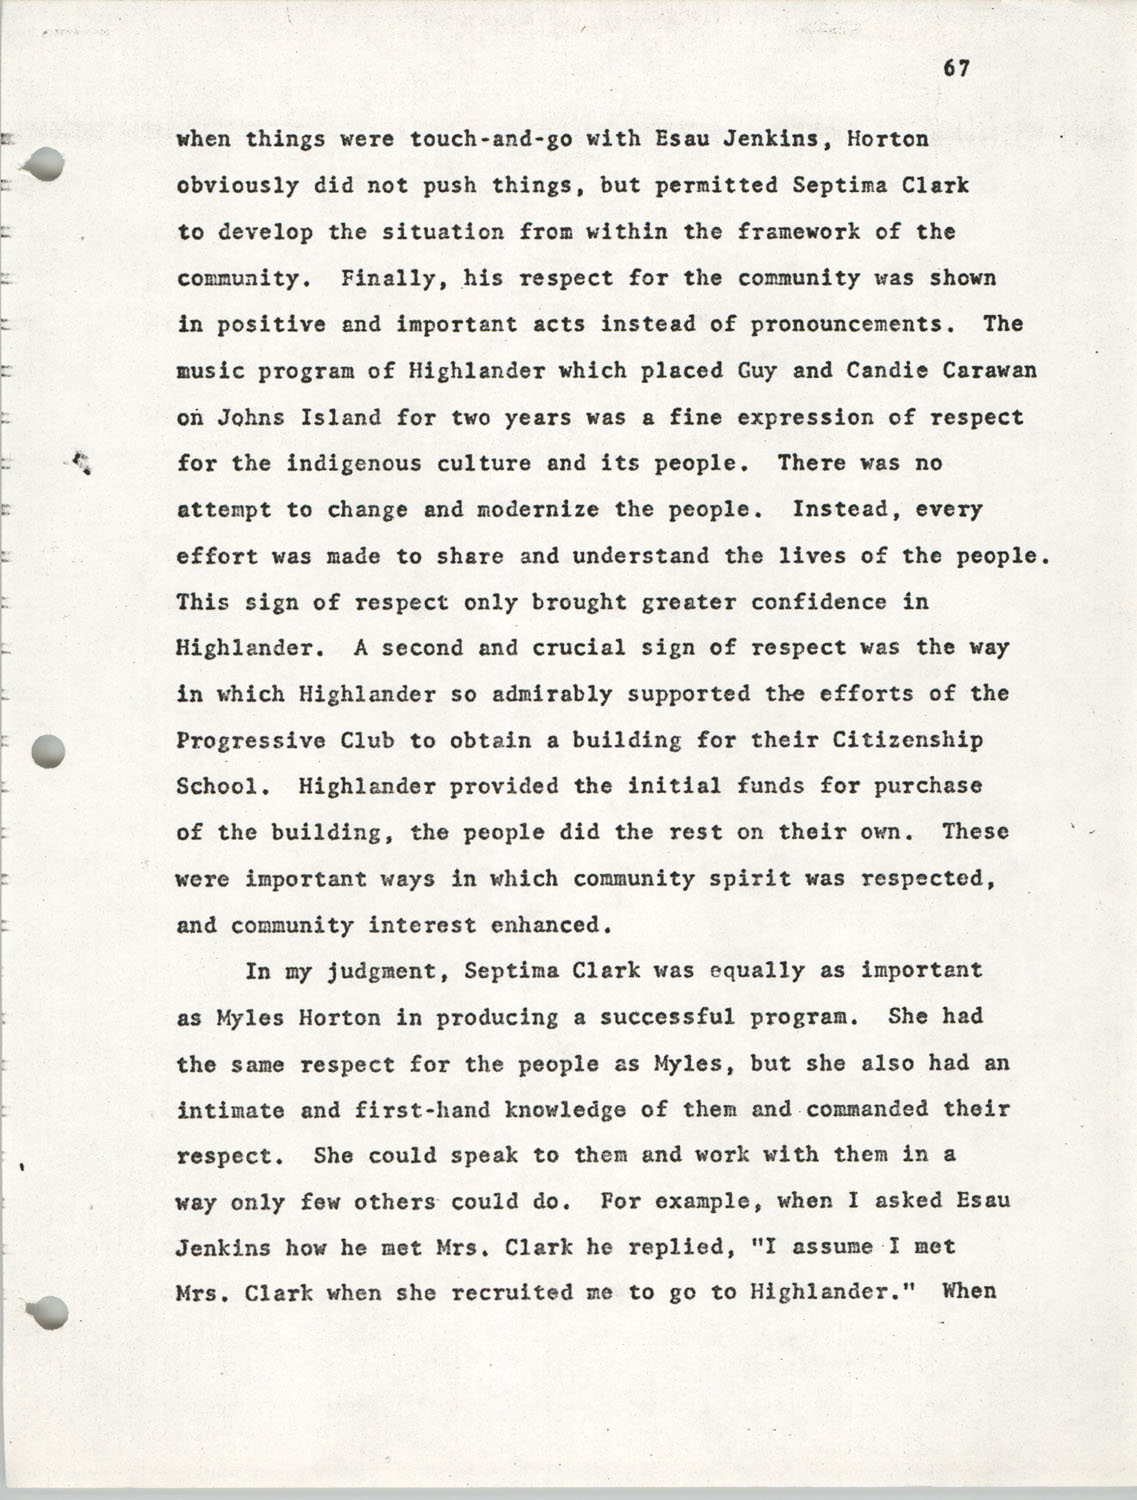 Citizen Participation. Democracy and Social Change, December 1, 1969, Page 67